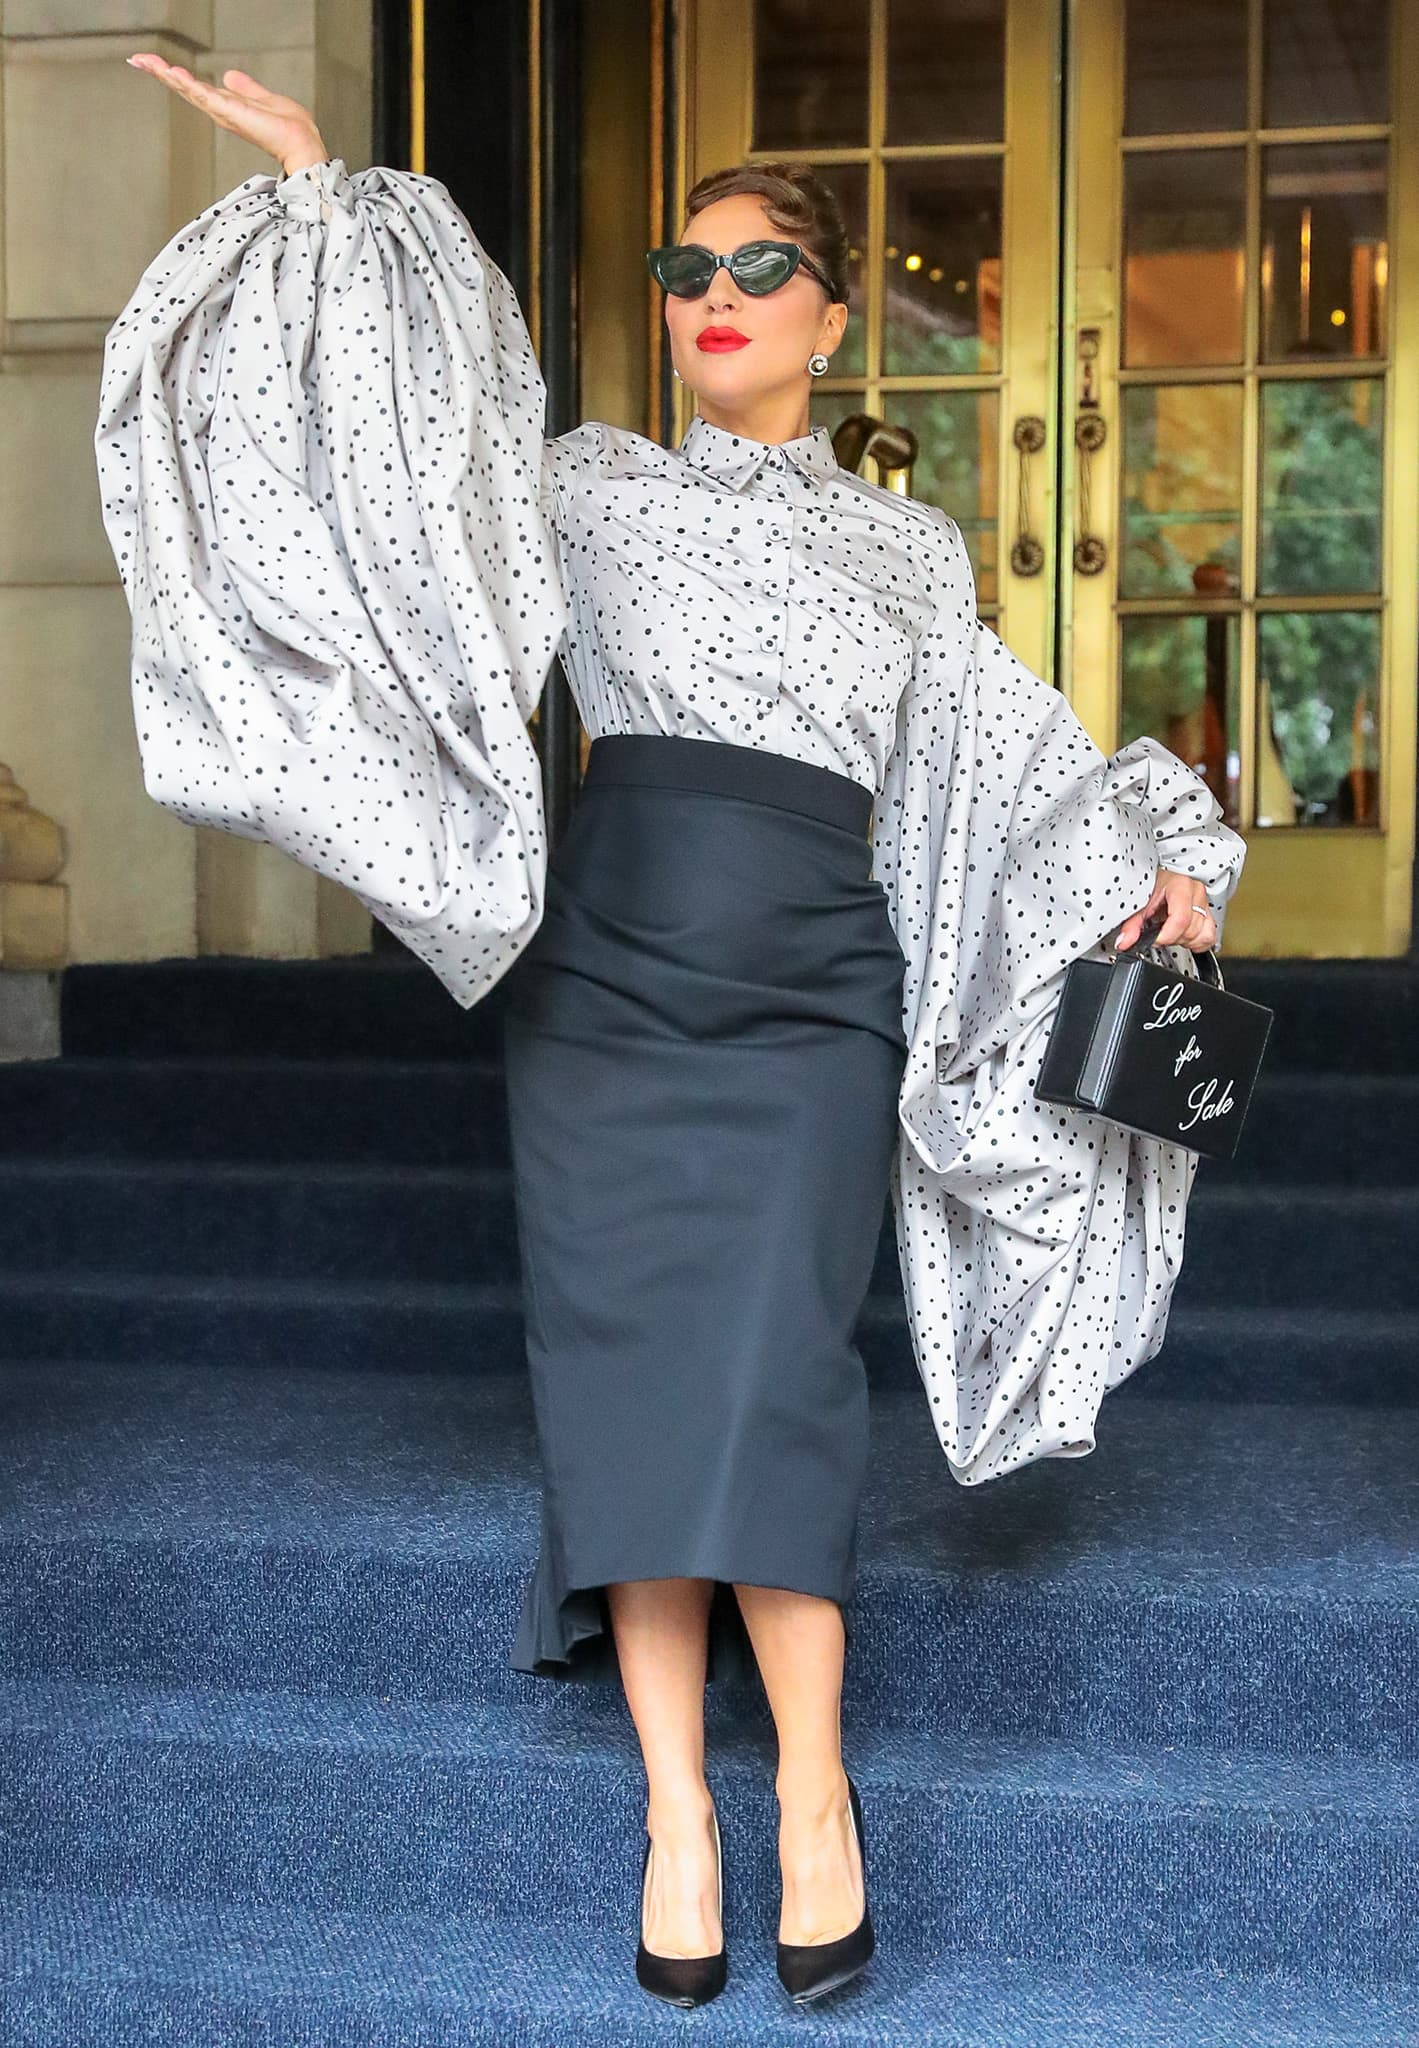 Lady Gaga makes a dramatic exit from Plaza Hotel in New York City on July 2, 2021